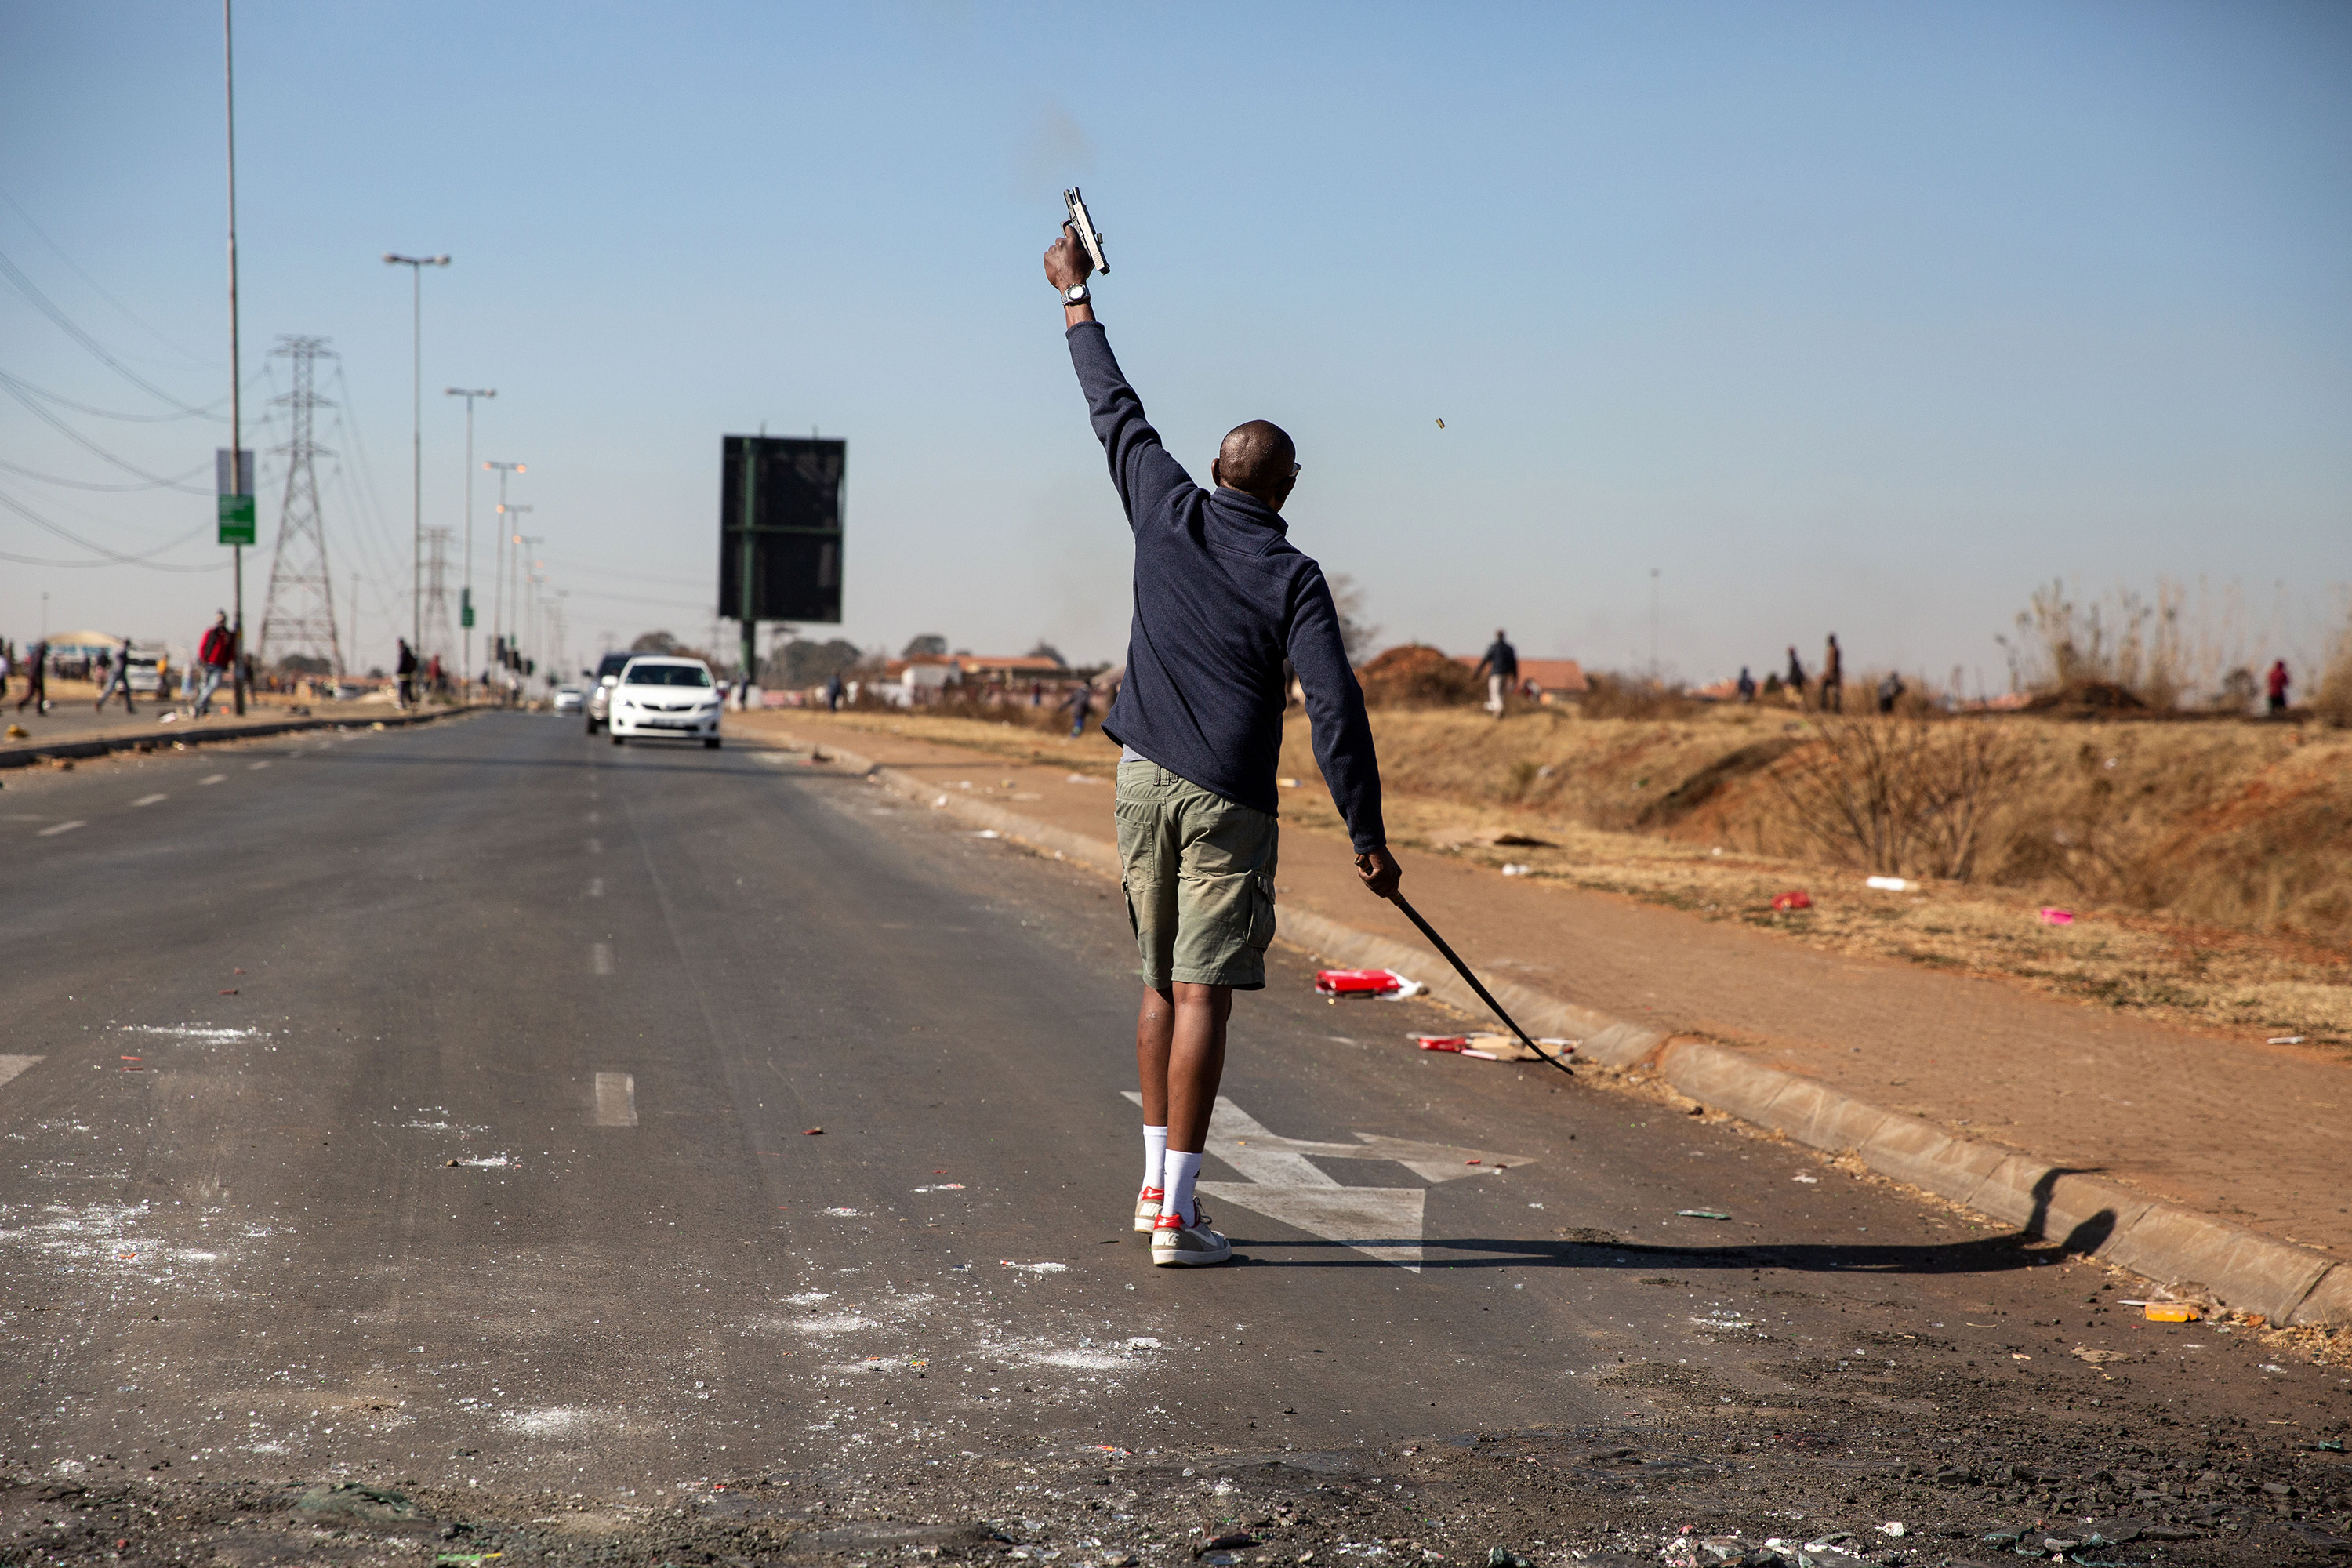 a person shoots a weapon into the air on a road in south africa.